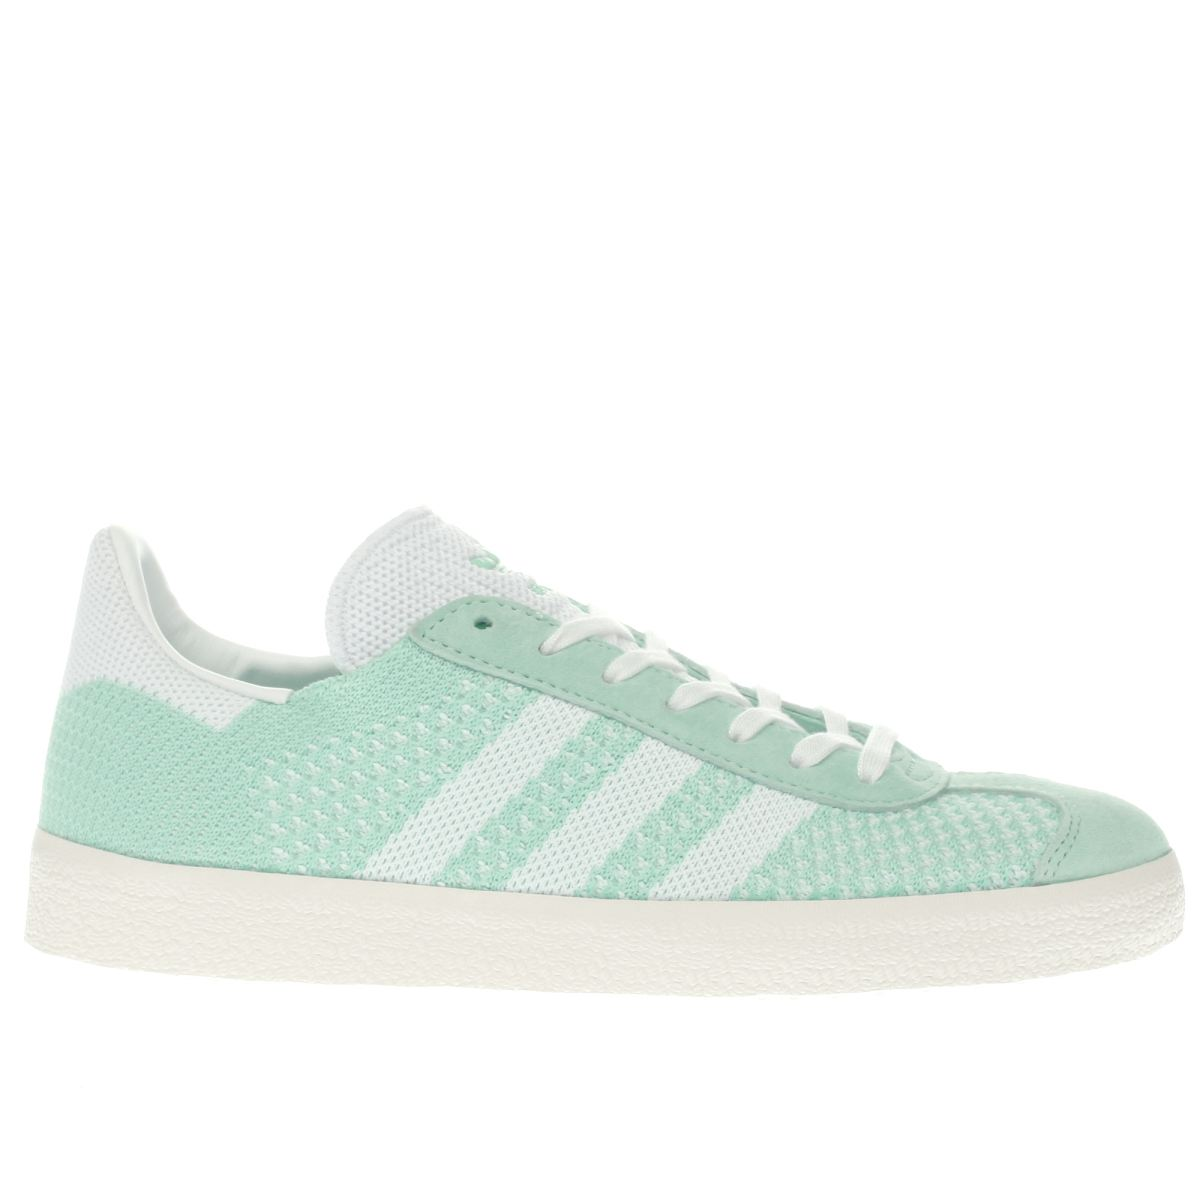 free shipping 4ae80 545a2 adidas light green gazelle primeknit trainers Review